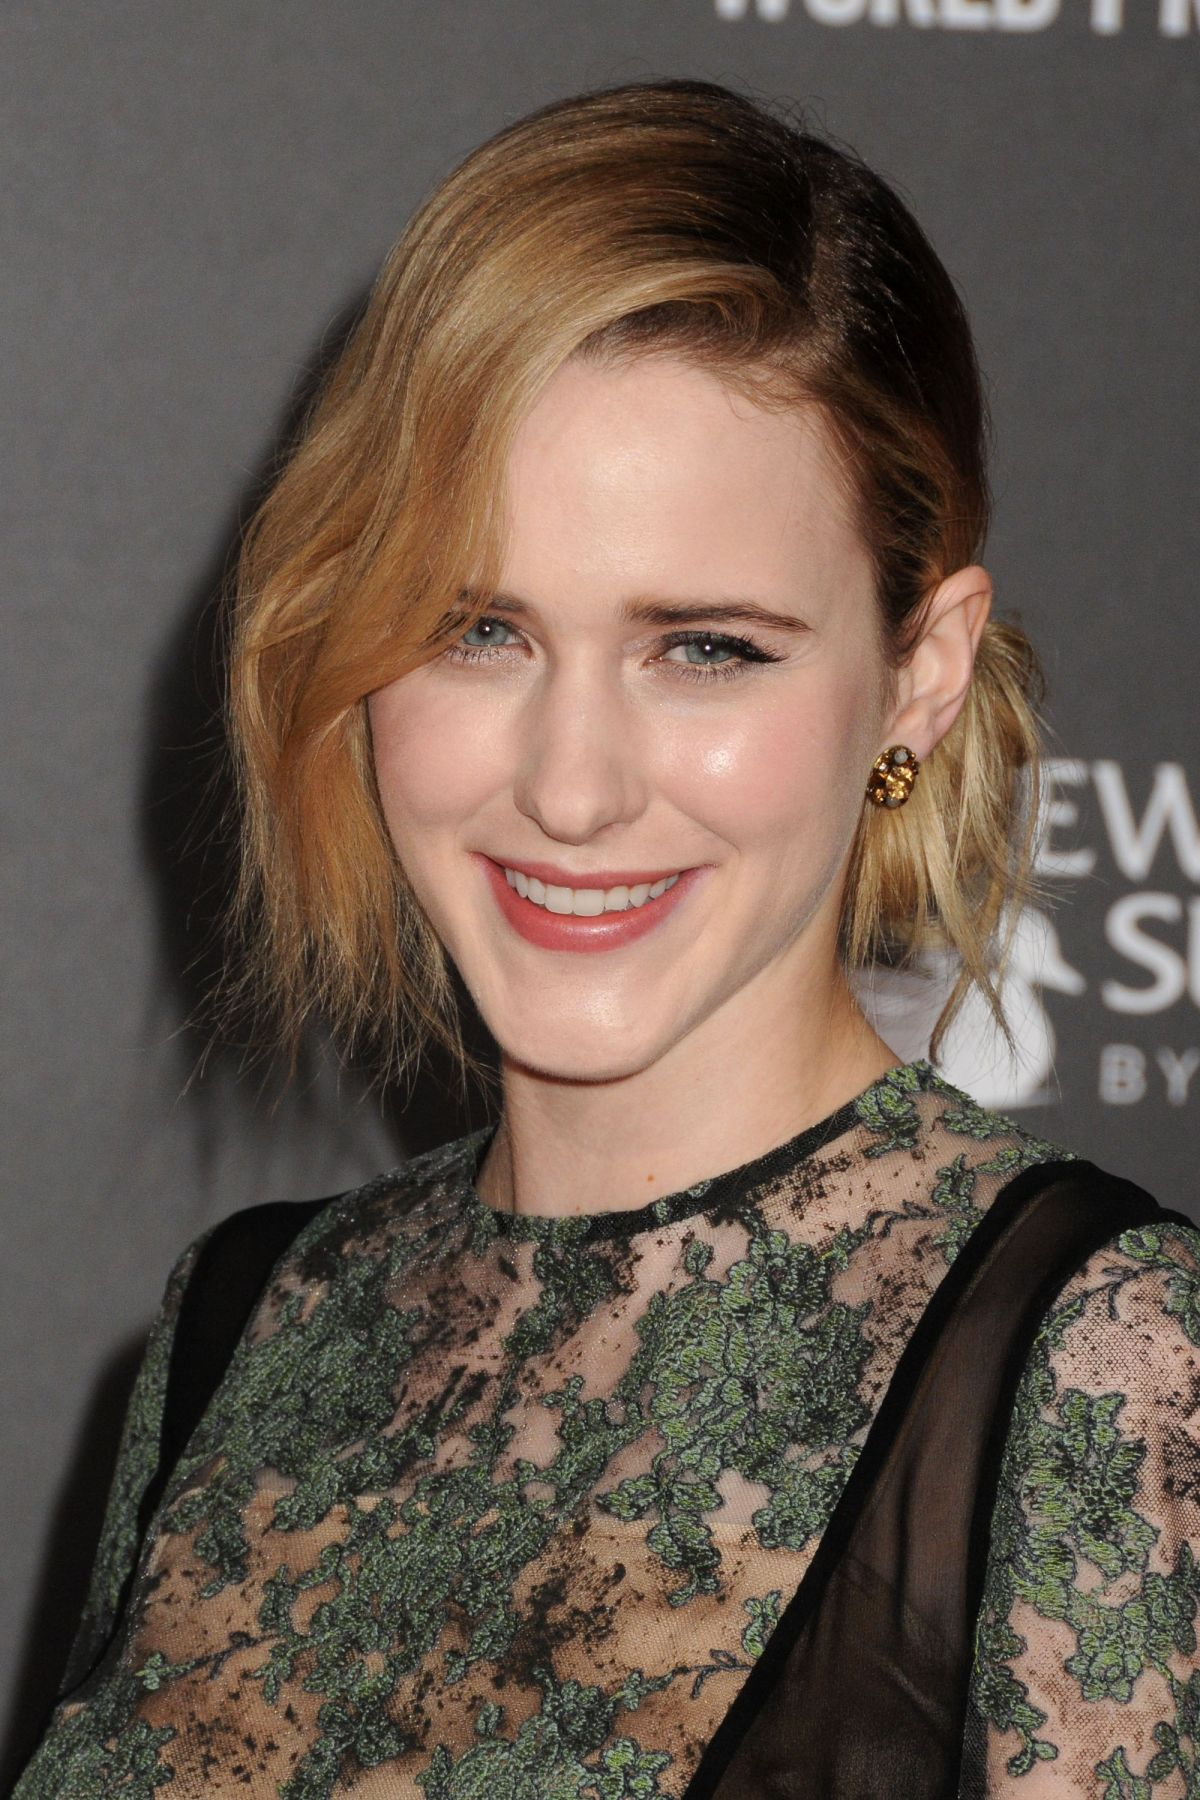 RACHEL BROSNAHAN at The Finest Hours Premiere in Los Angeles 01/25/2016